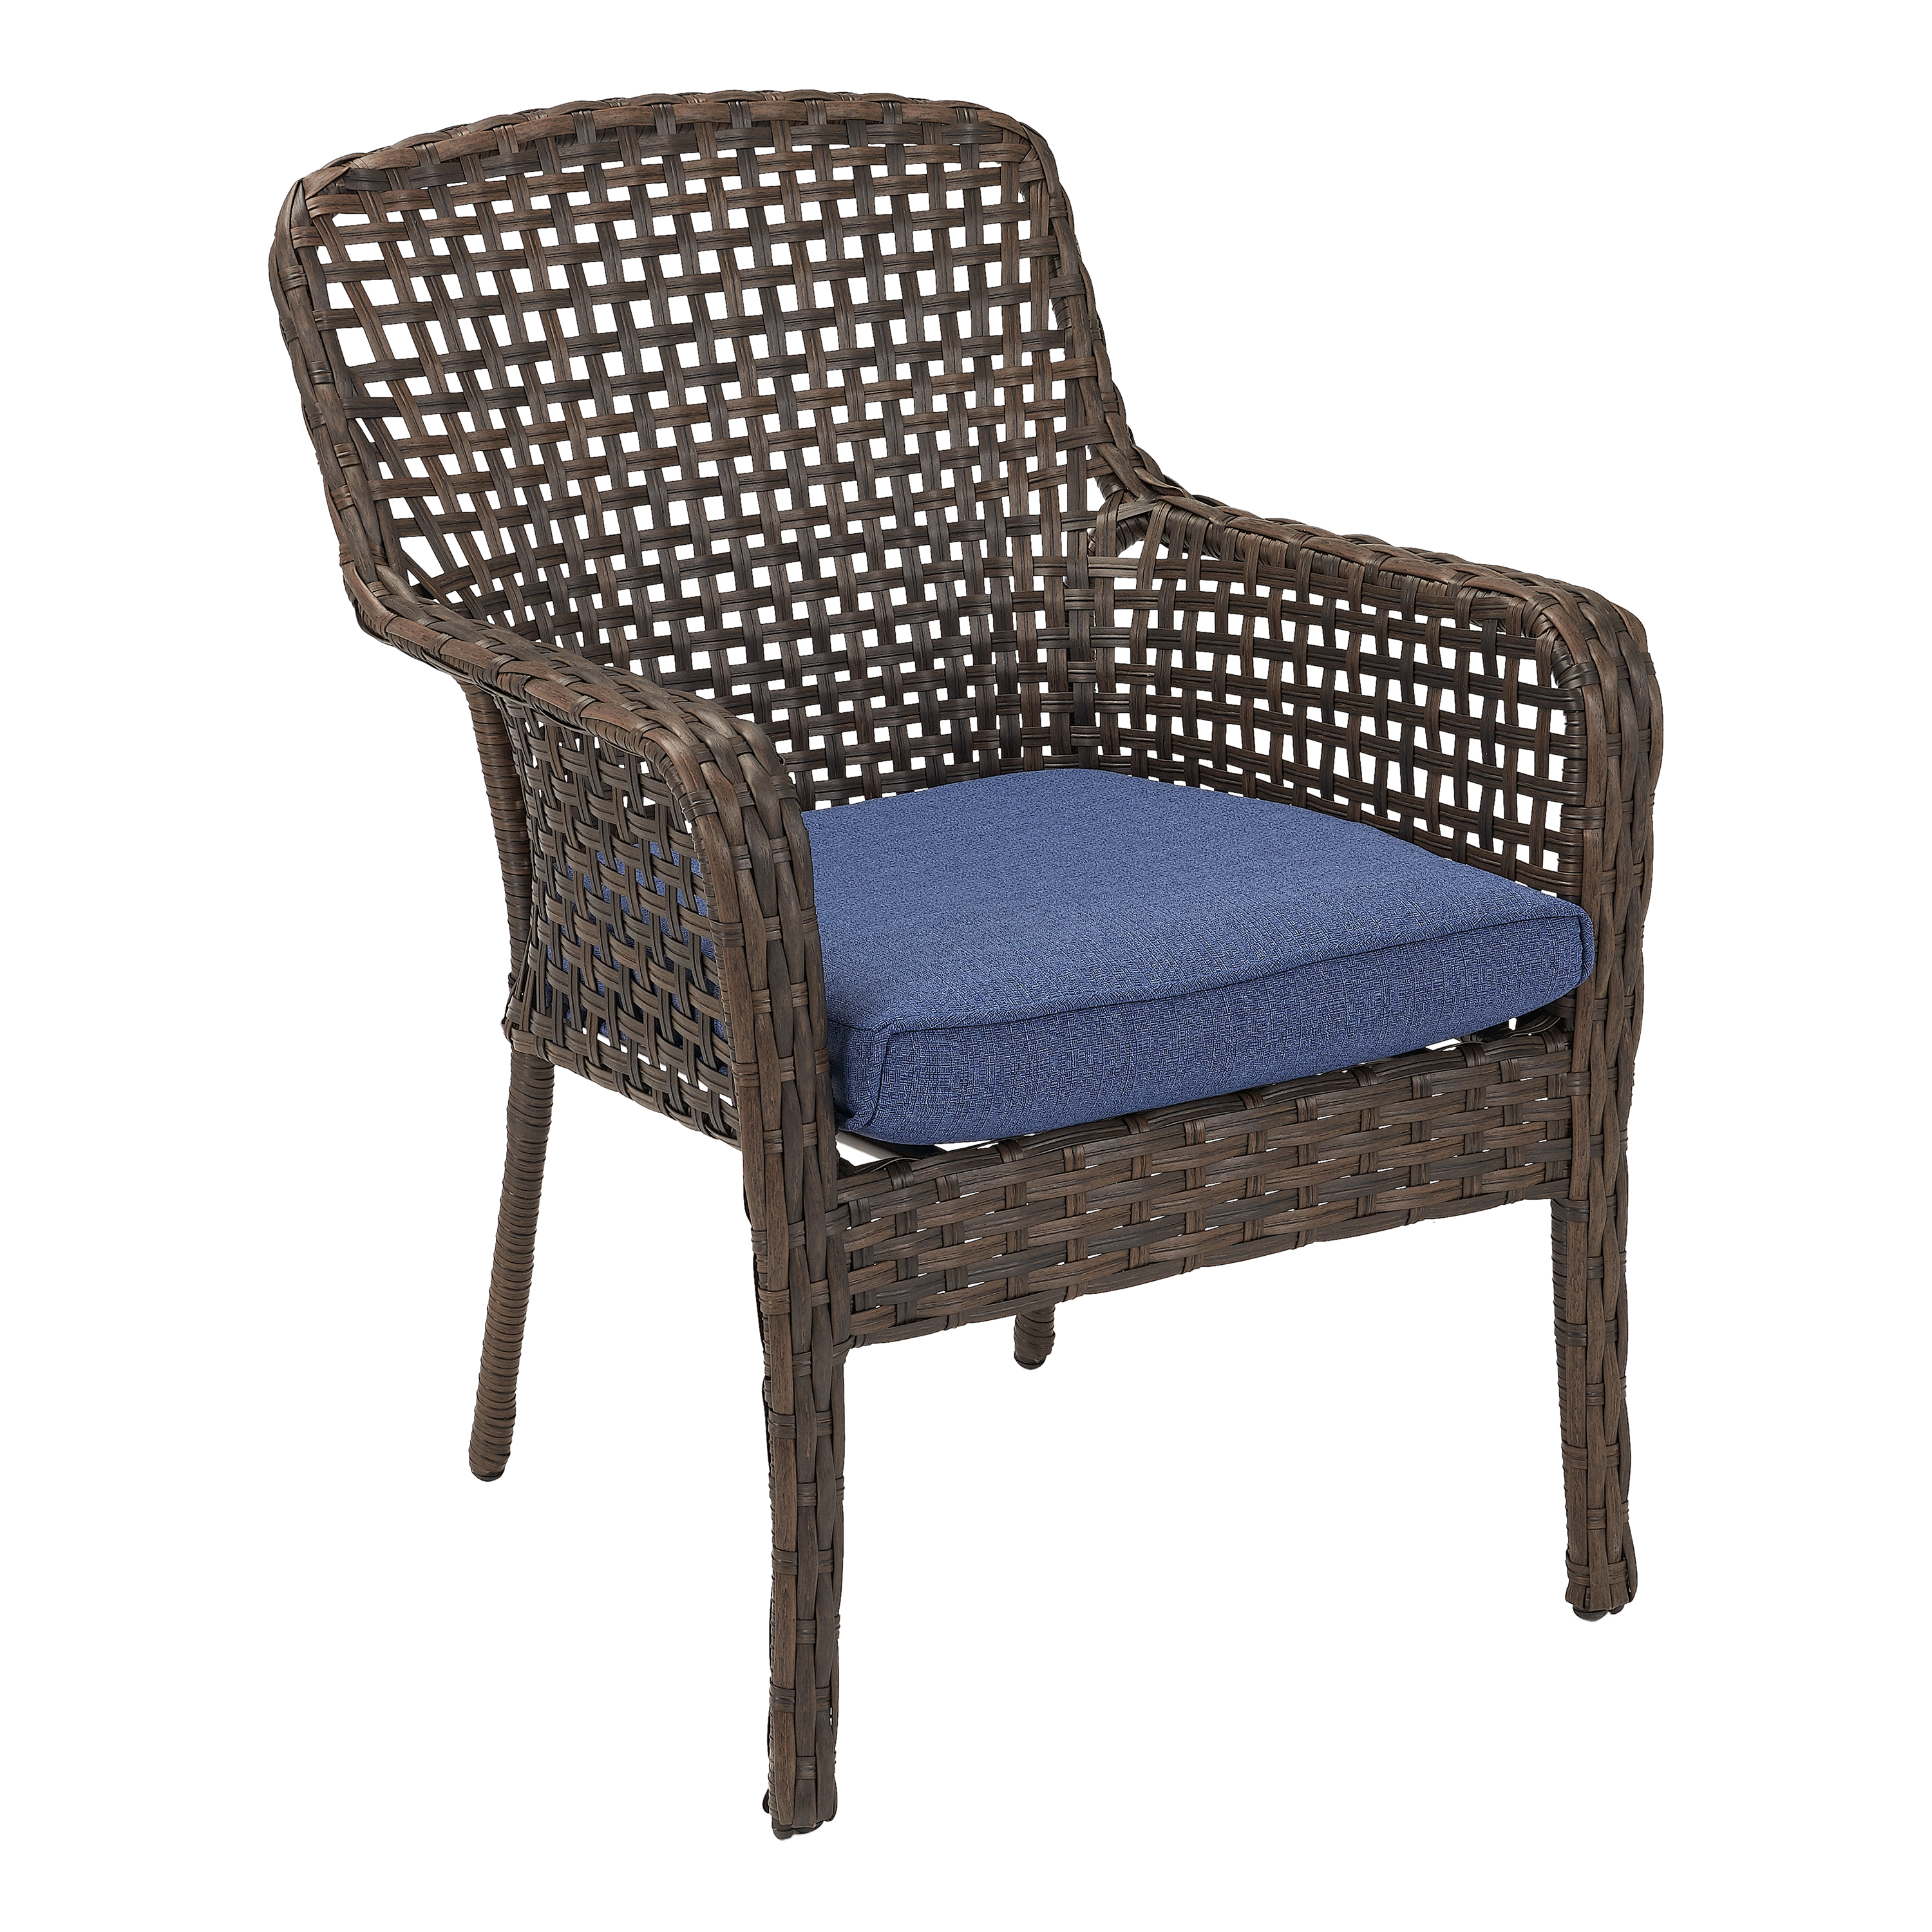 Better Homes & Gardens Ravenbrooke 4-Piece Dining Chair Set with Blue Cushions